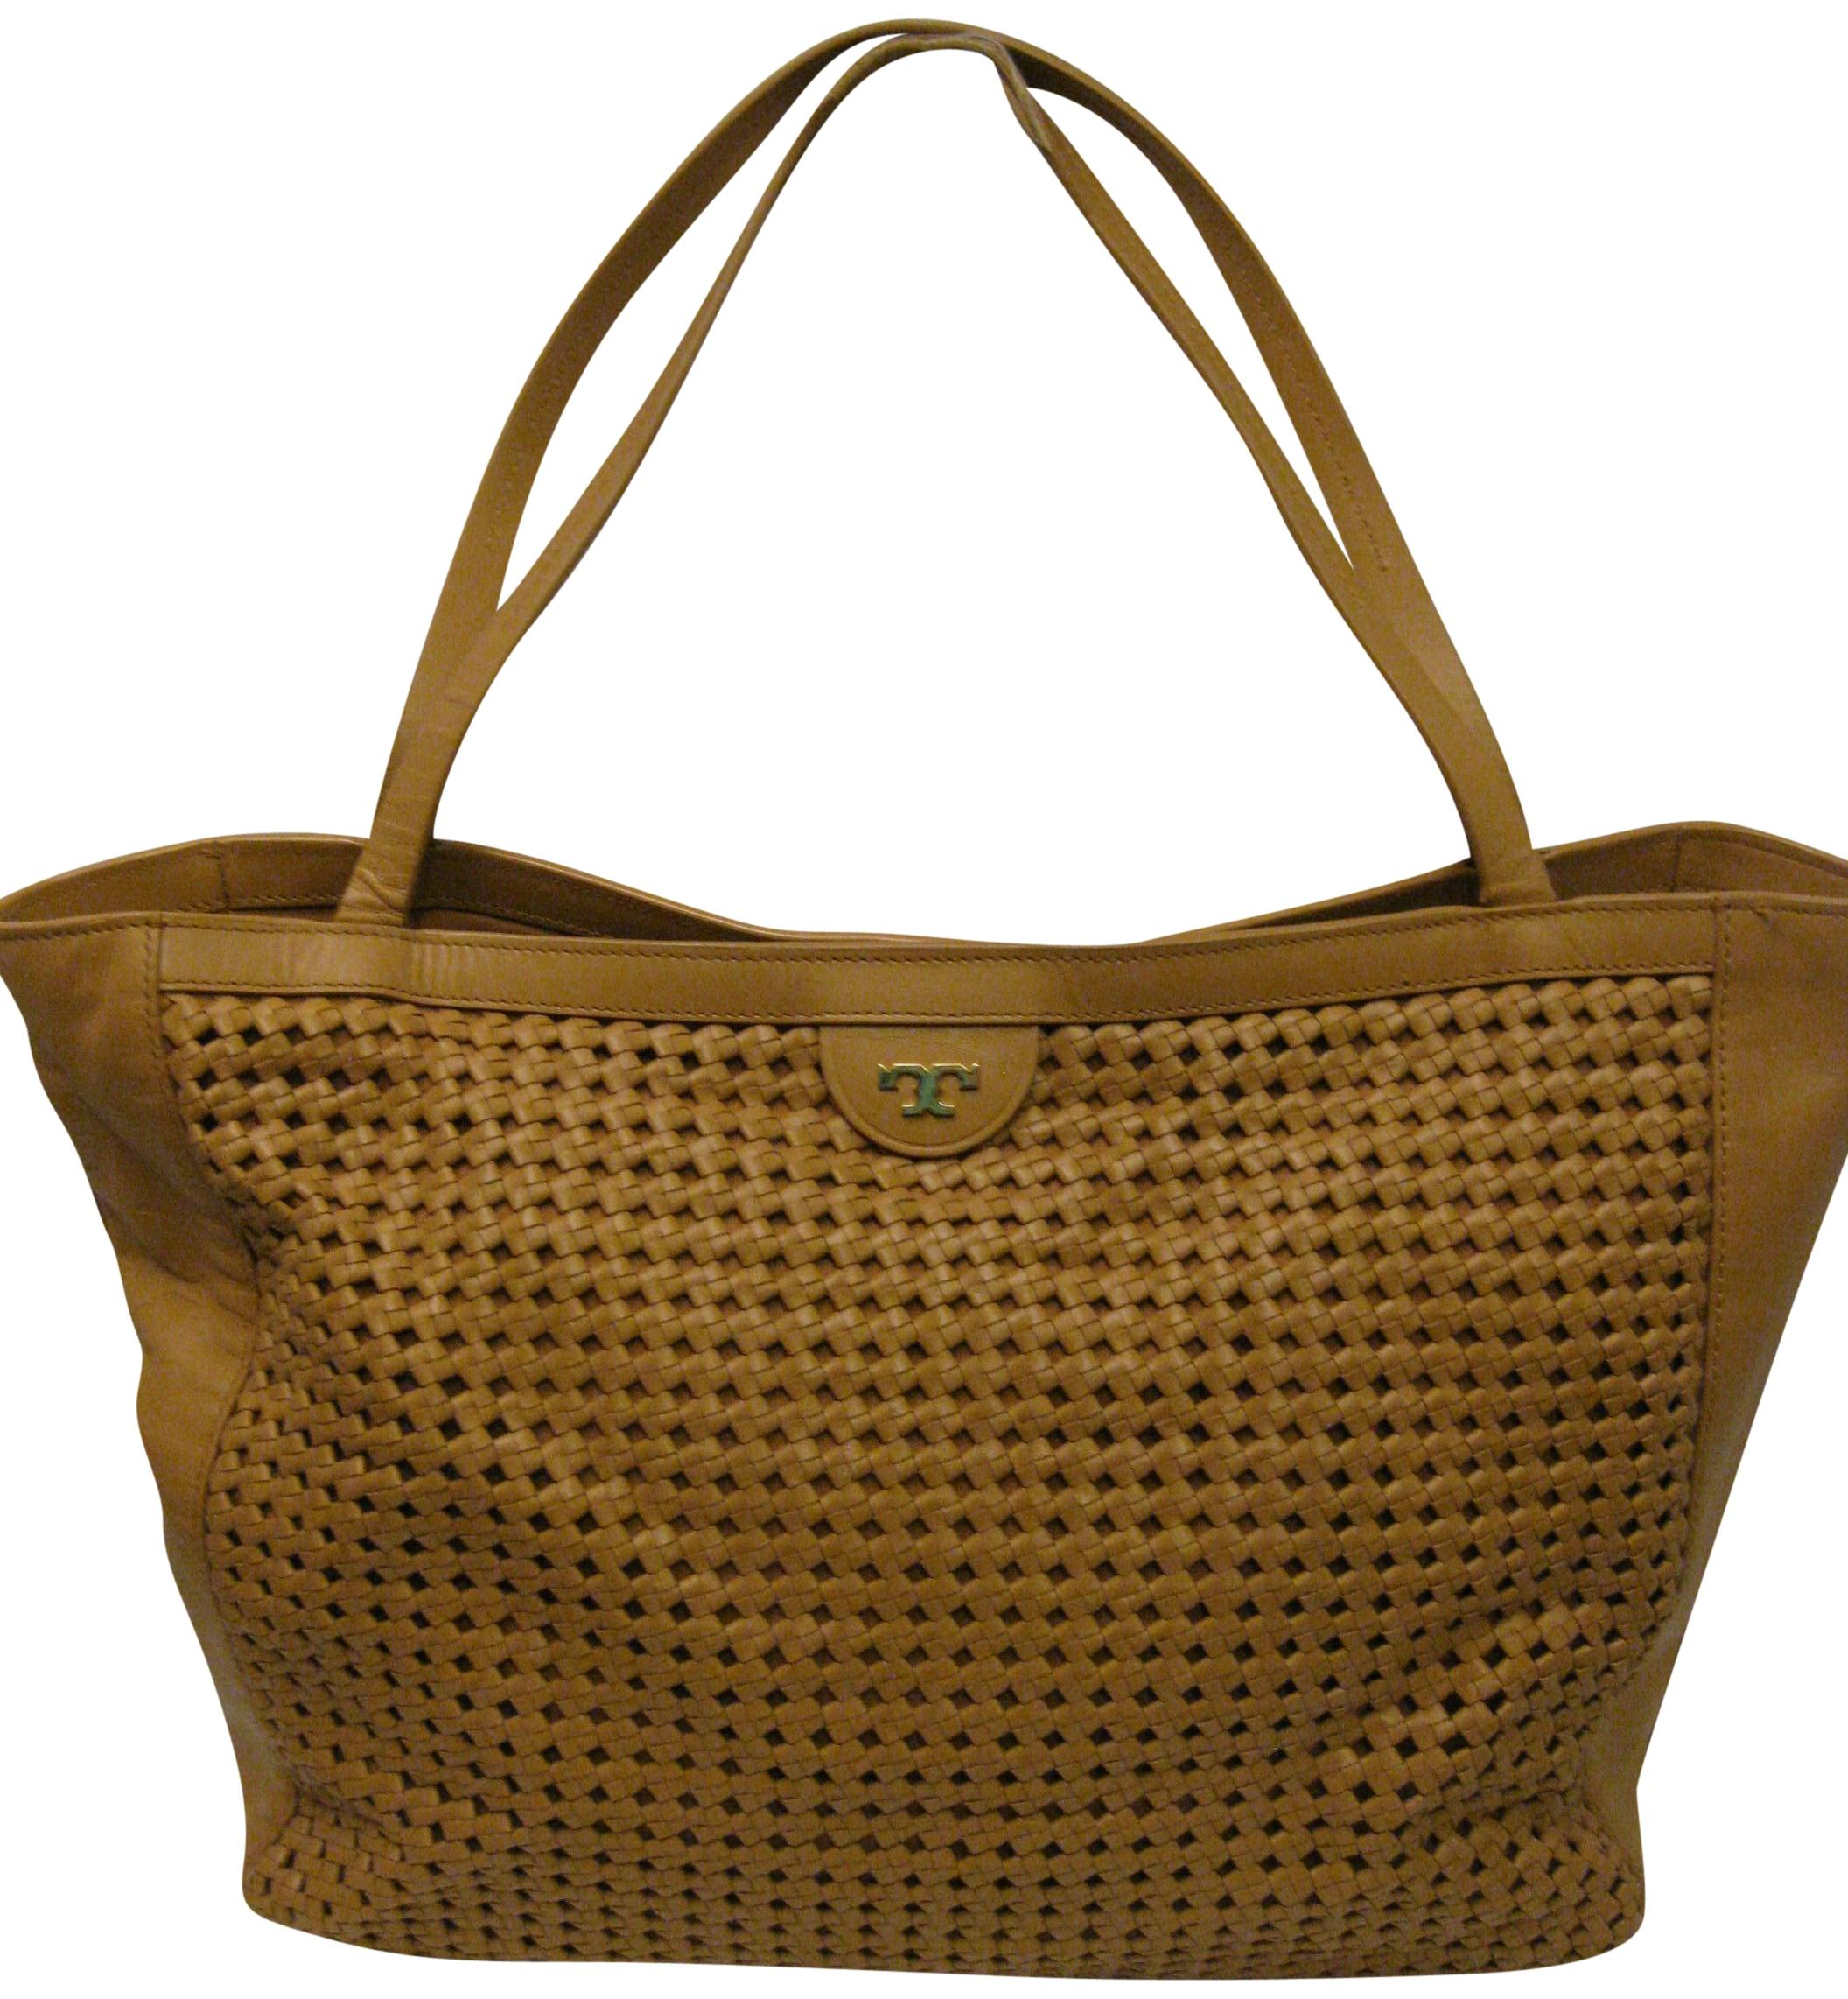 Relatively Tory Burch Romi Woven Purse Ret. Tan Leather Tote - Tradesy KF15